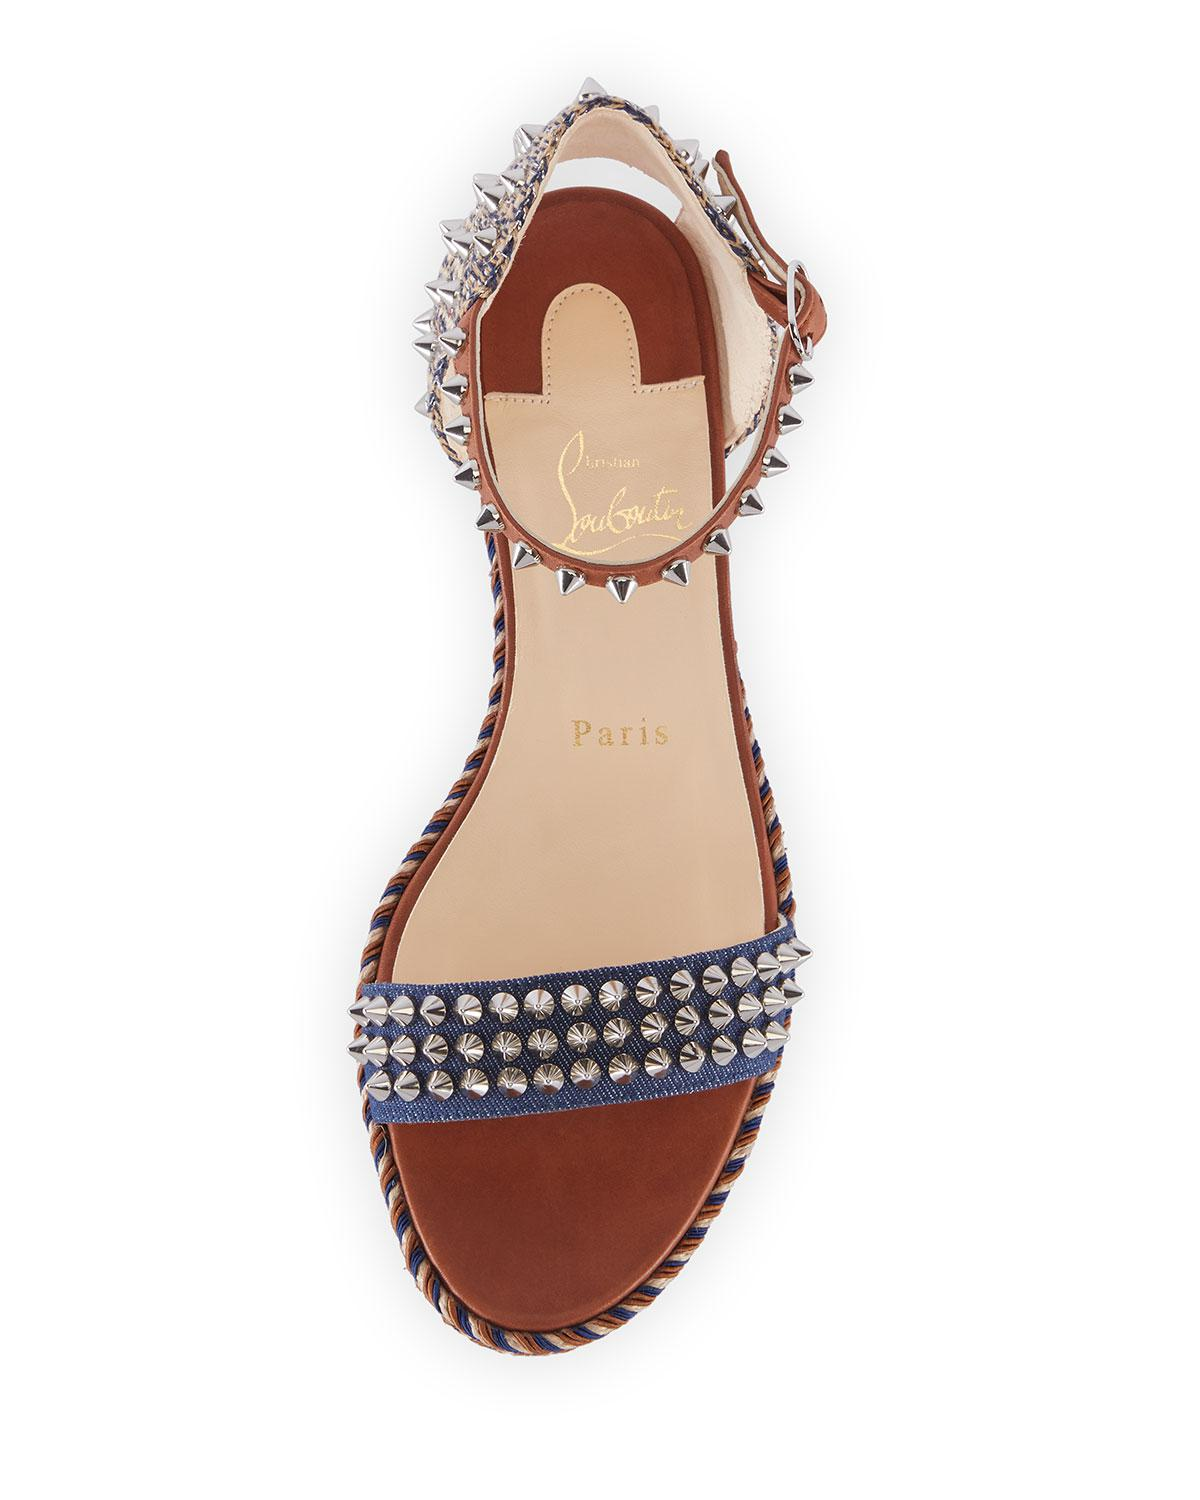 1f31064ec975 Lyst - Christian Louboutin Madmonica 60mm Spiked Denim Wedge Red Sole  Sandals in Blue